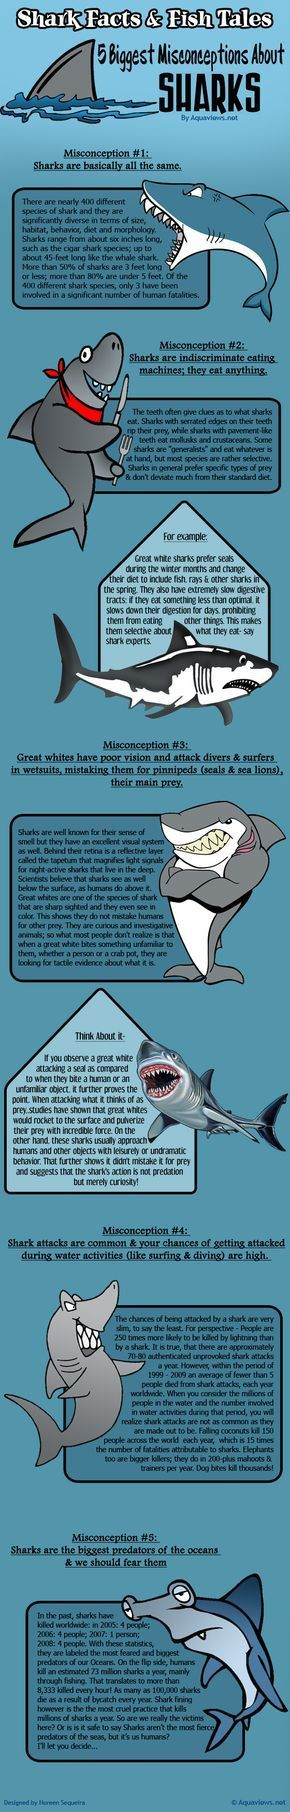 #GoEco #volunteerabroad Shark Facts And Fish Tales: 5 Biggest Misconceptions About Sharks